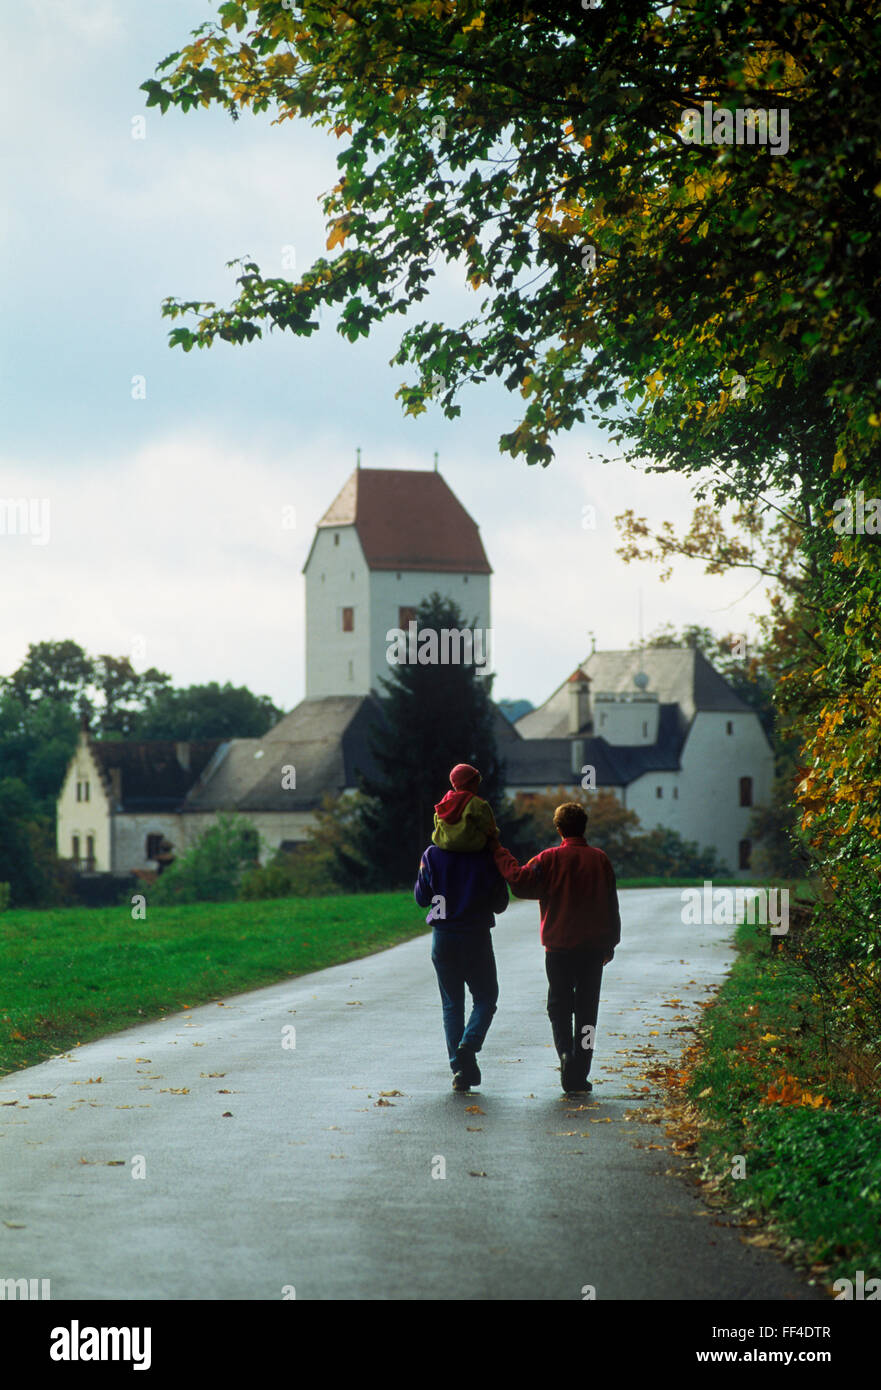 Family of three on country road in Graf in Bavaria,  Germany - Stock Image